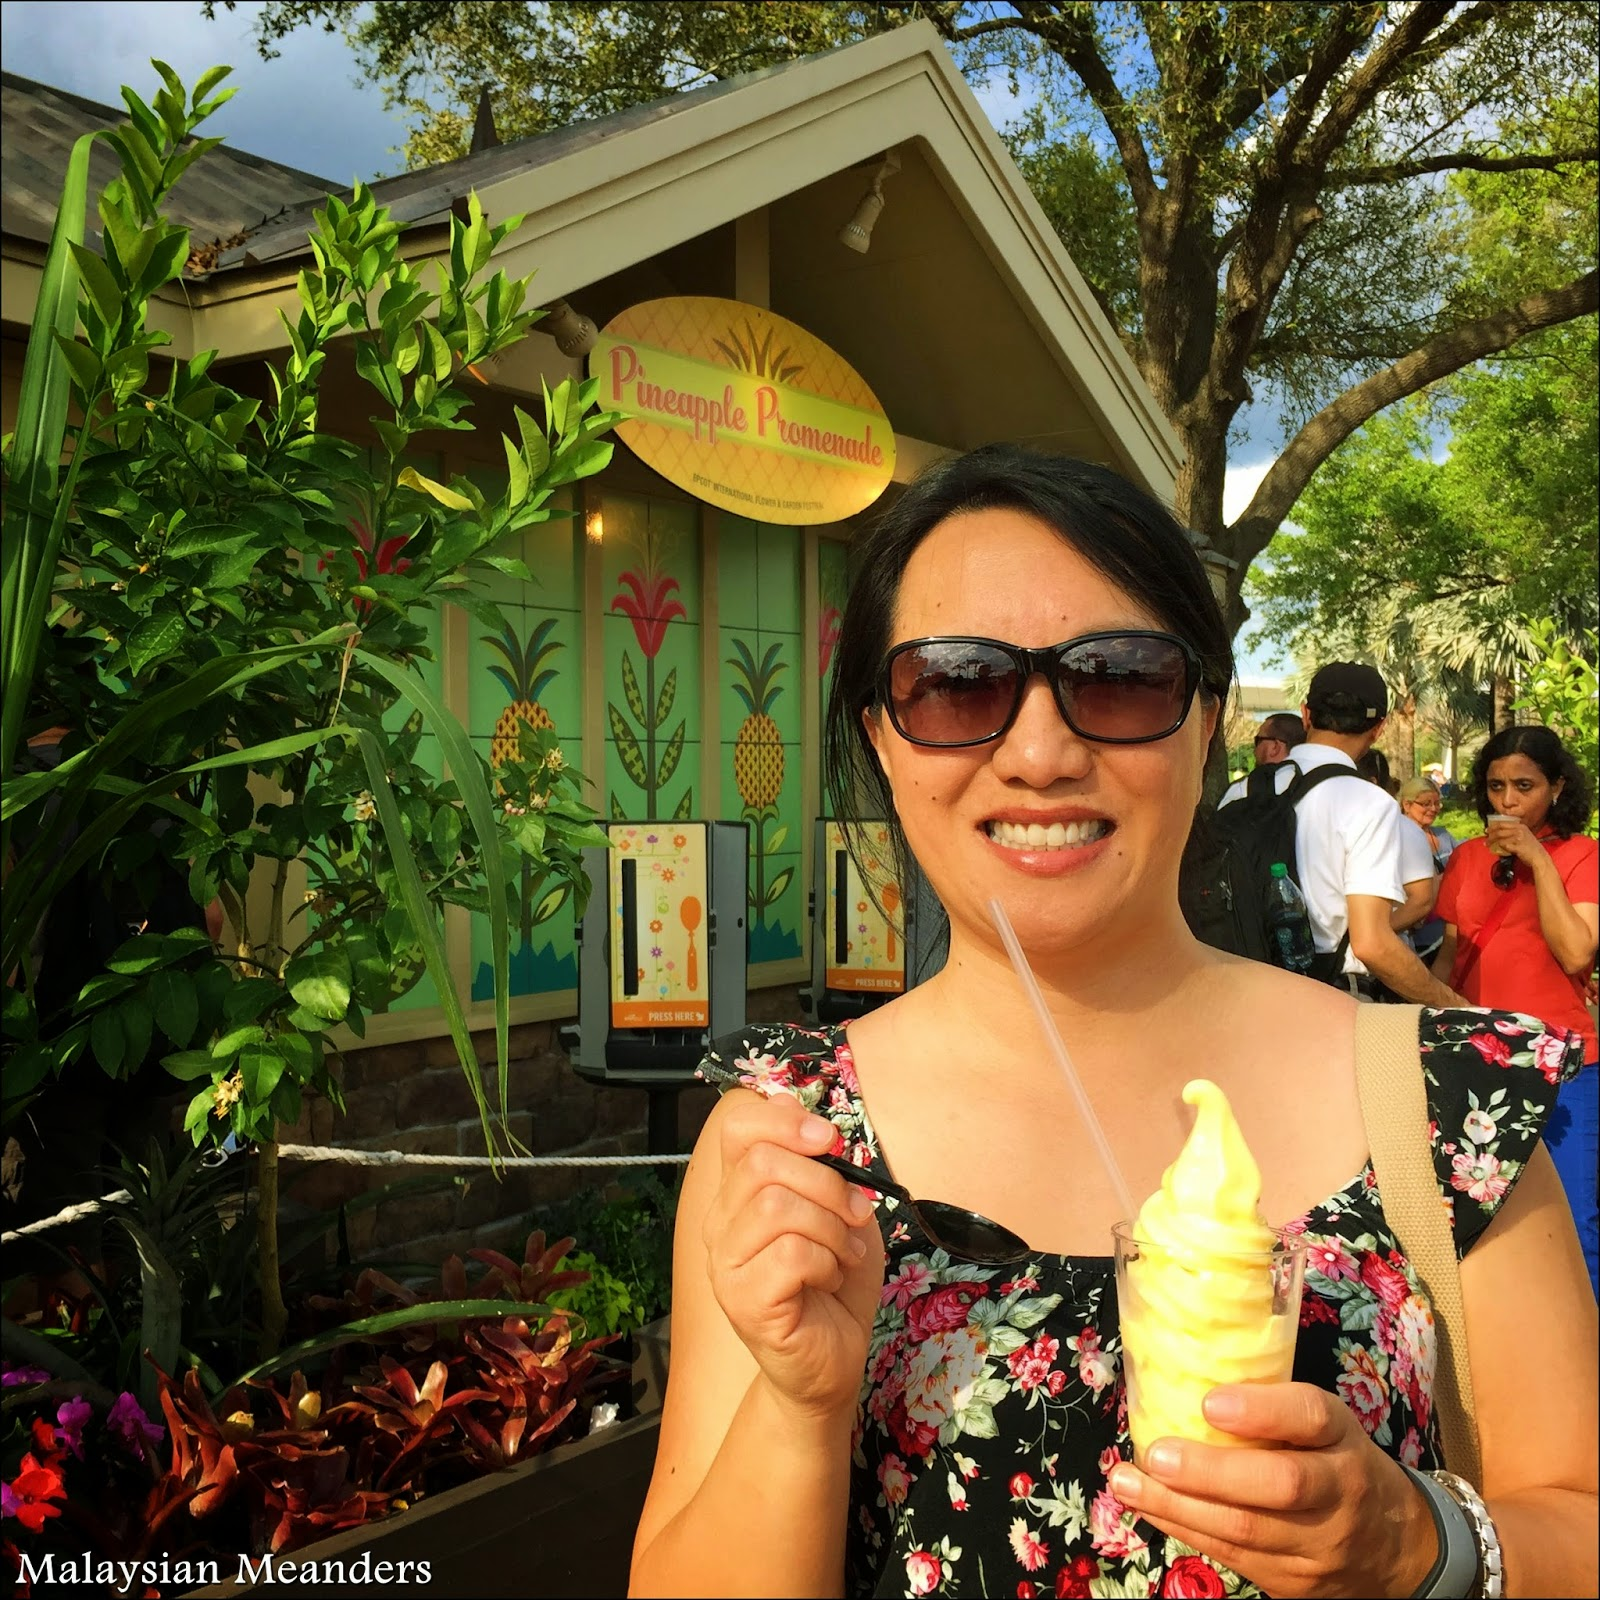 Dole Whip, Pineapple Promenade